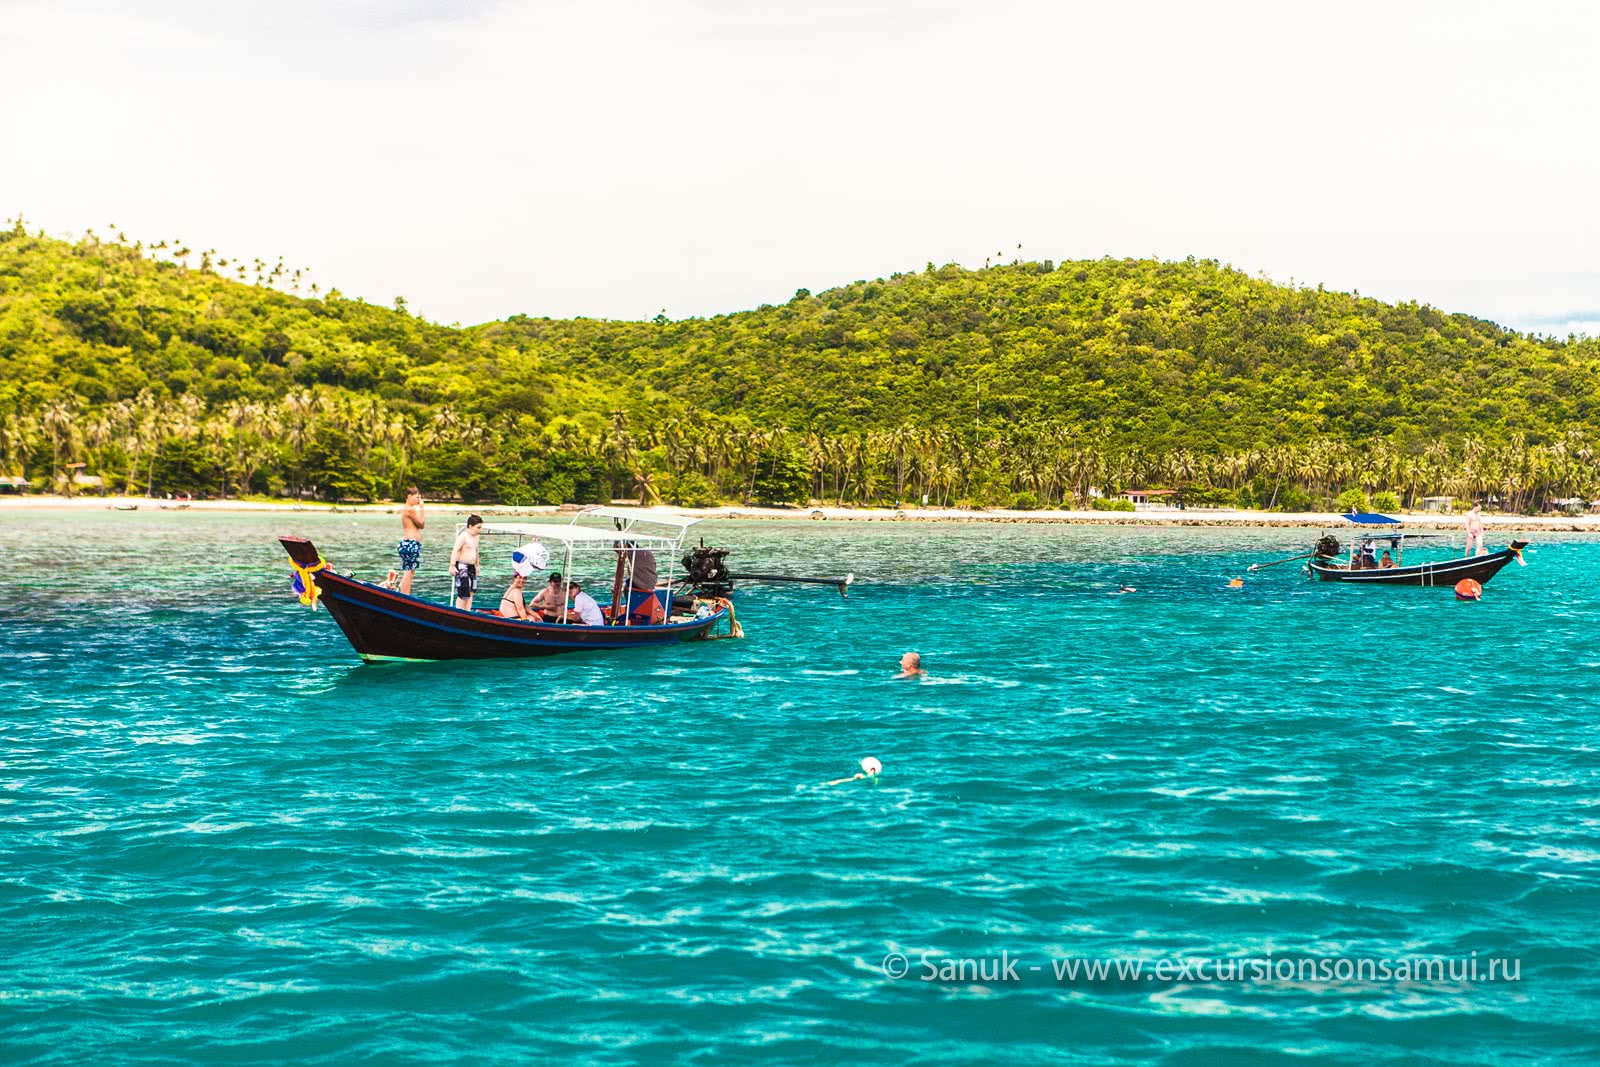 Kayaking and snorkeling in the waters of Koh Tan, Koh Samui, Thailand